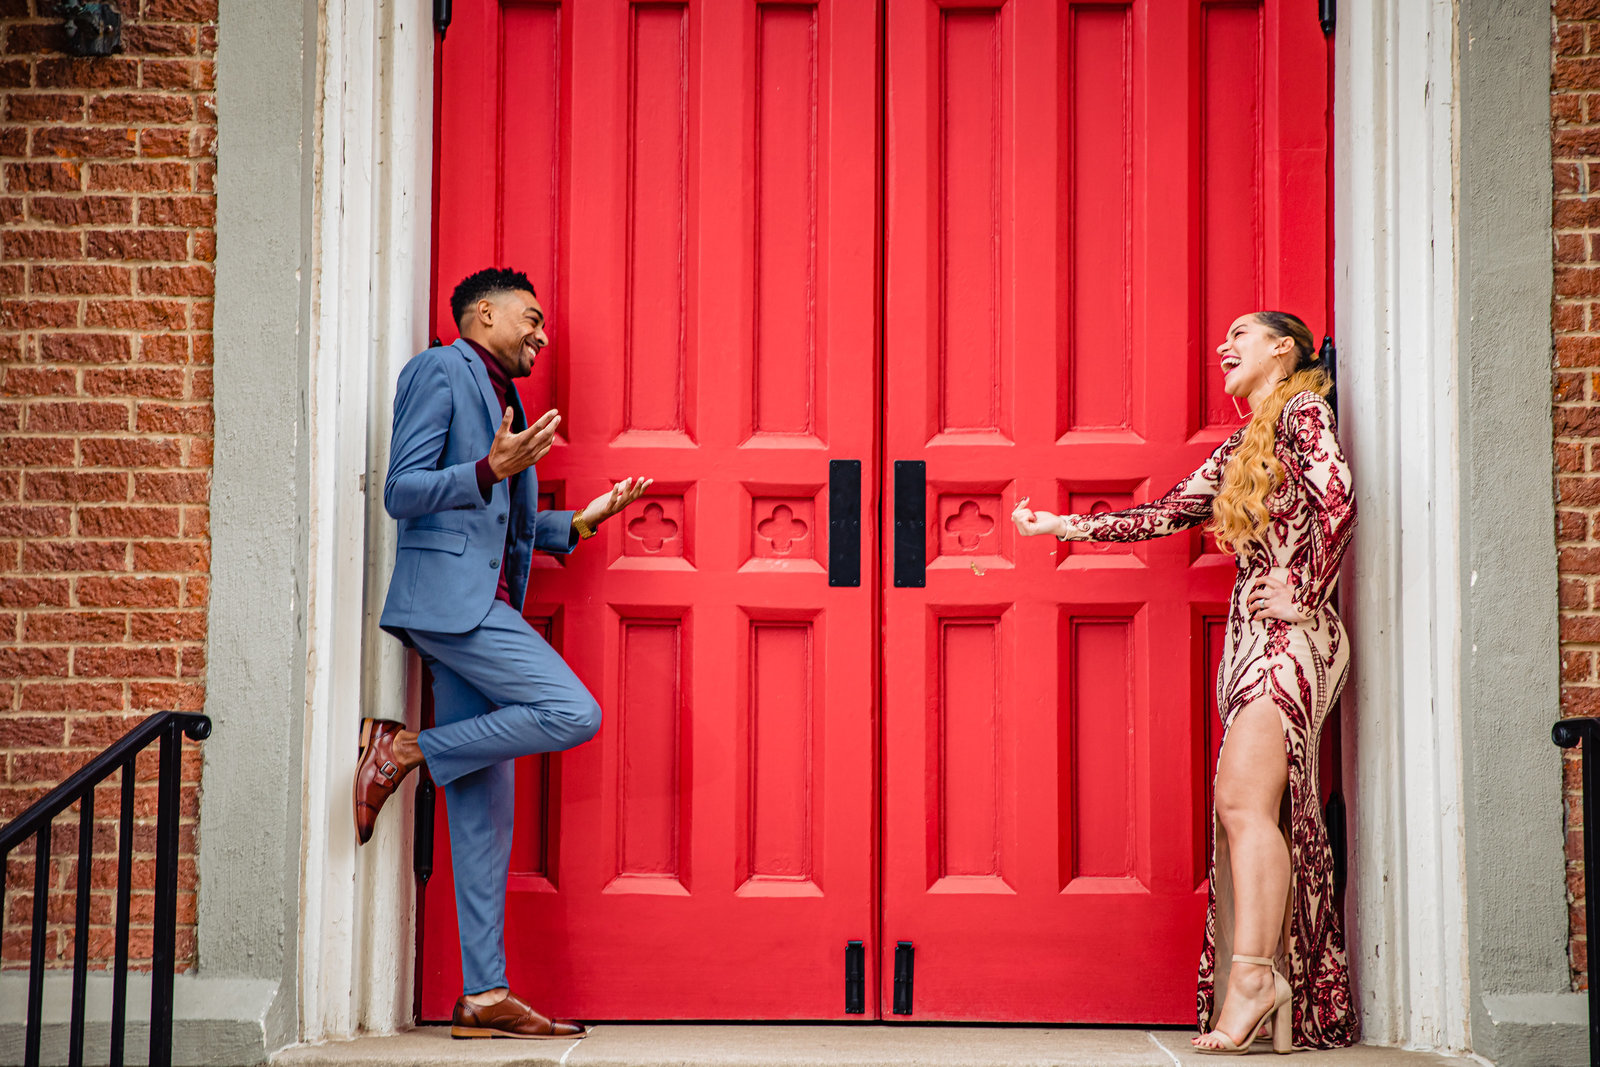 Shelby-County-Courthouse-Red Door-Memphis-TN-Wedding-Portraits-Photography-Session-34